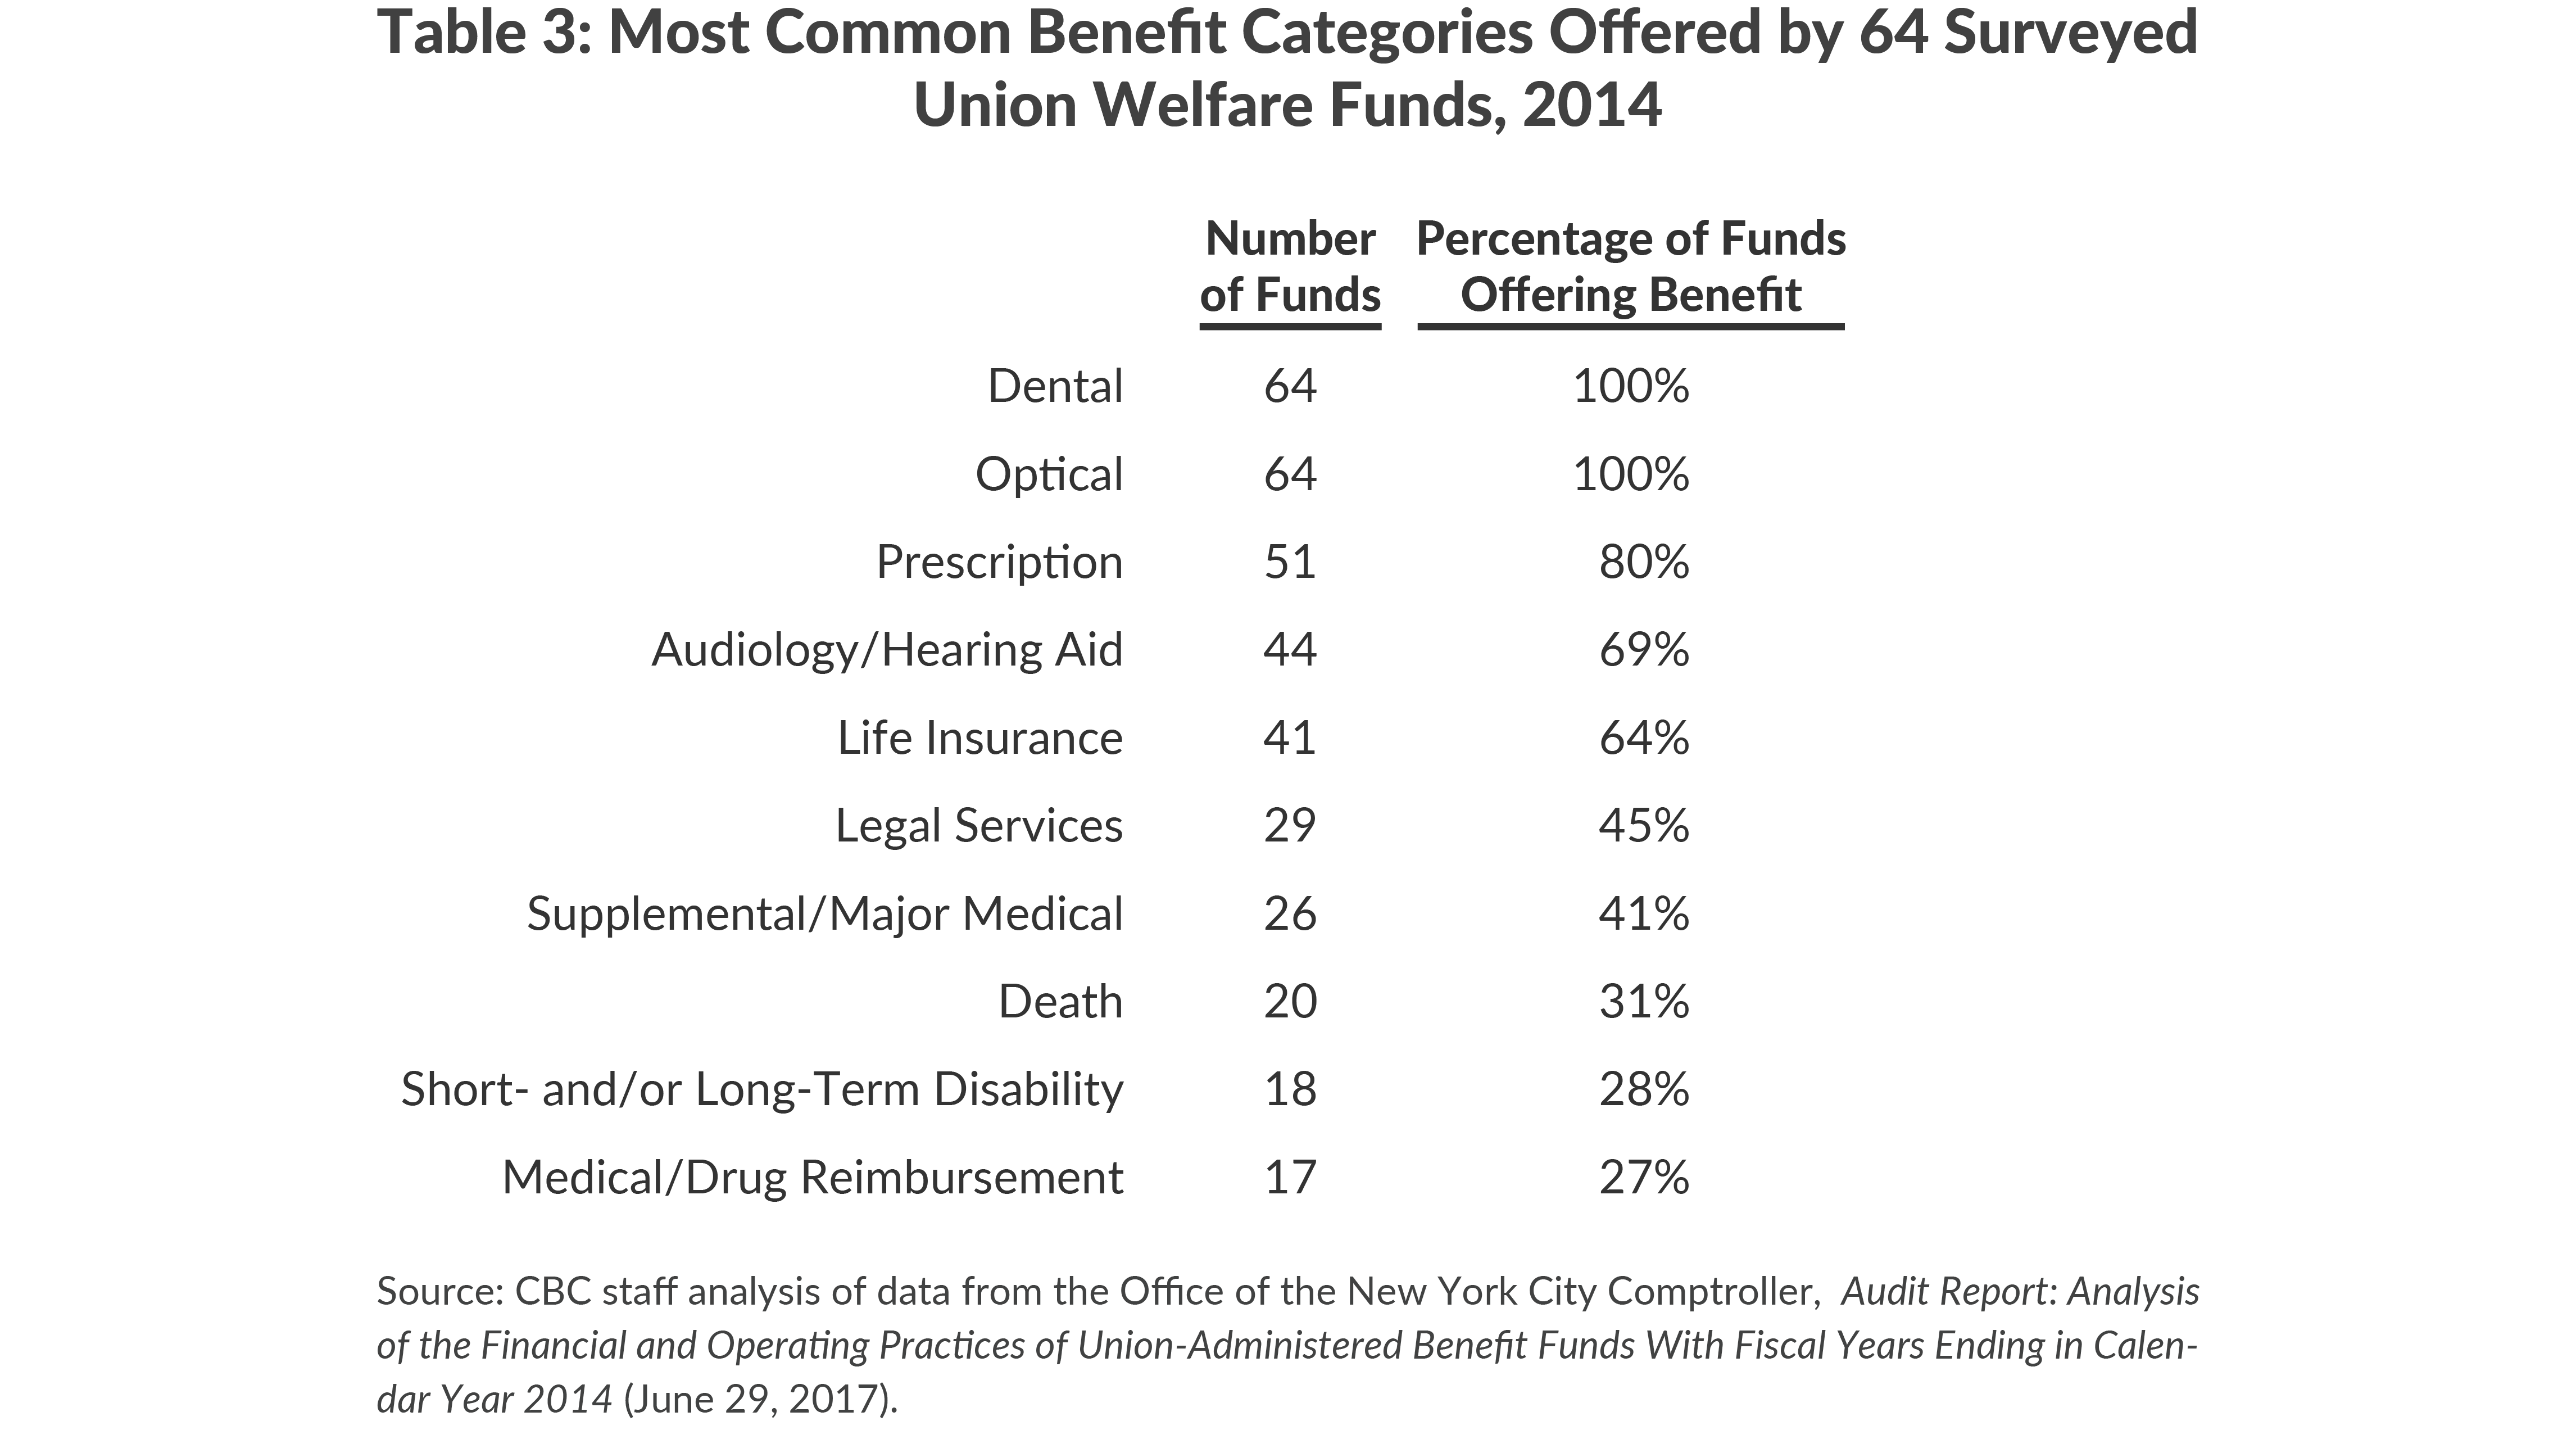 Table 3: Most Common Benefit Categories Offered by 64 SurveyedUnion Welfare Funds, 2014